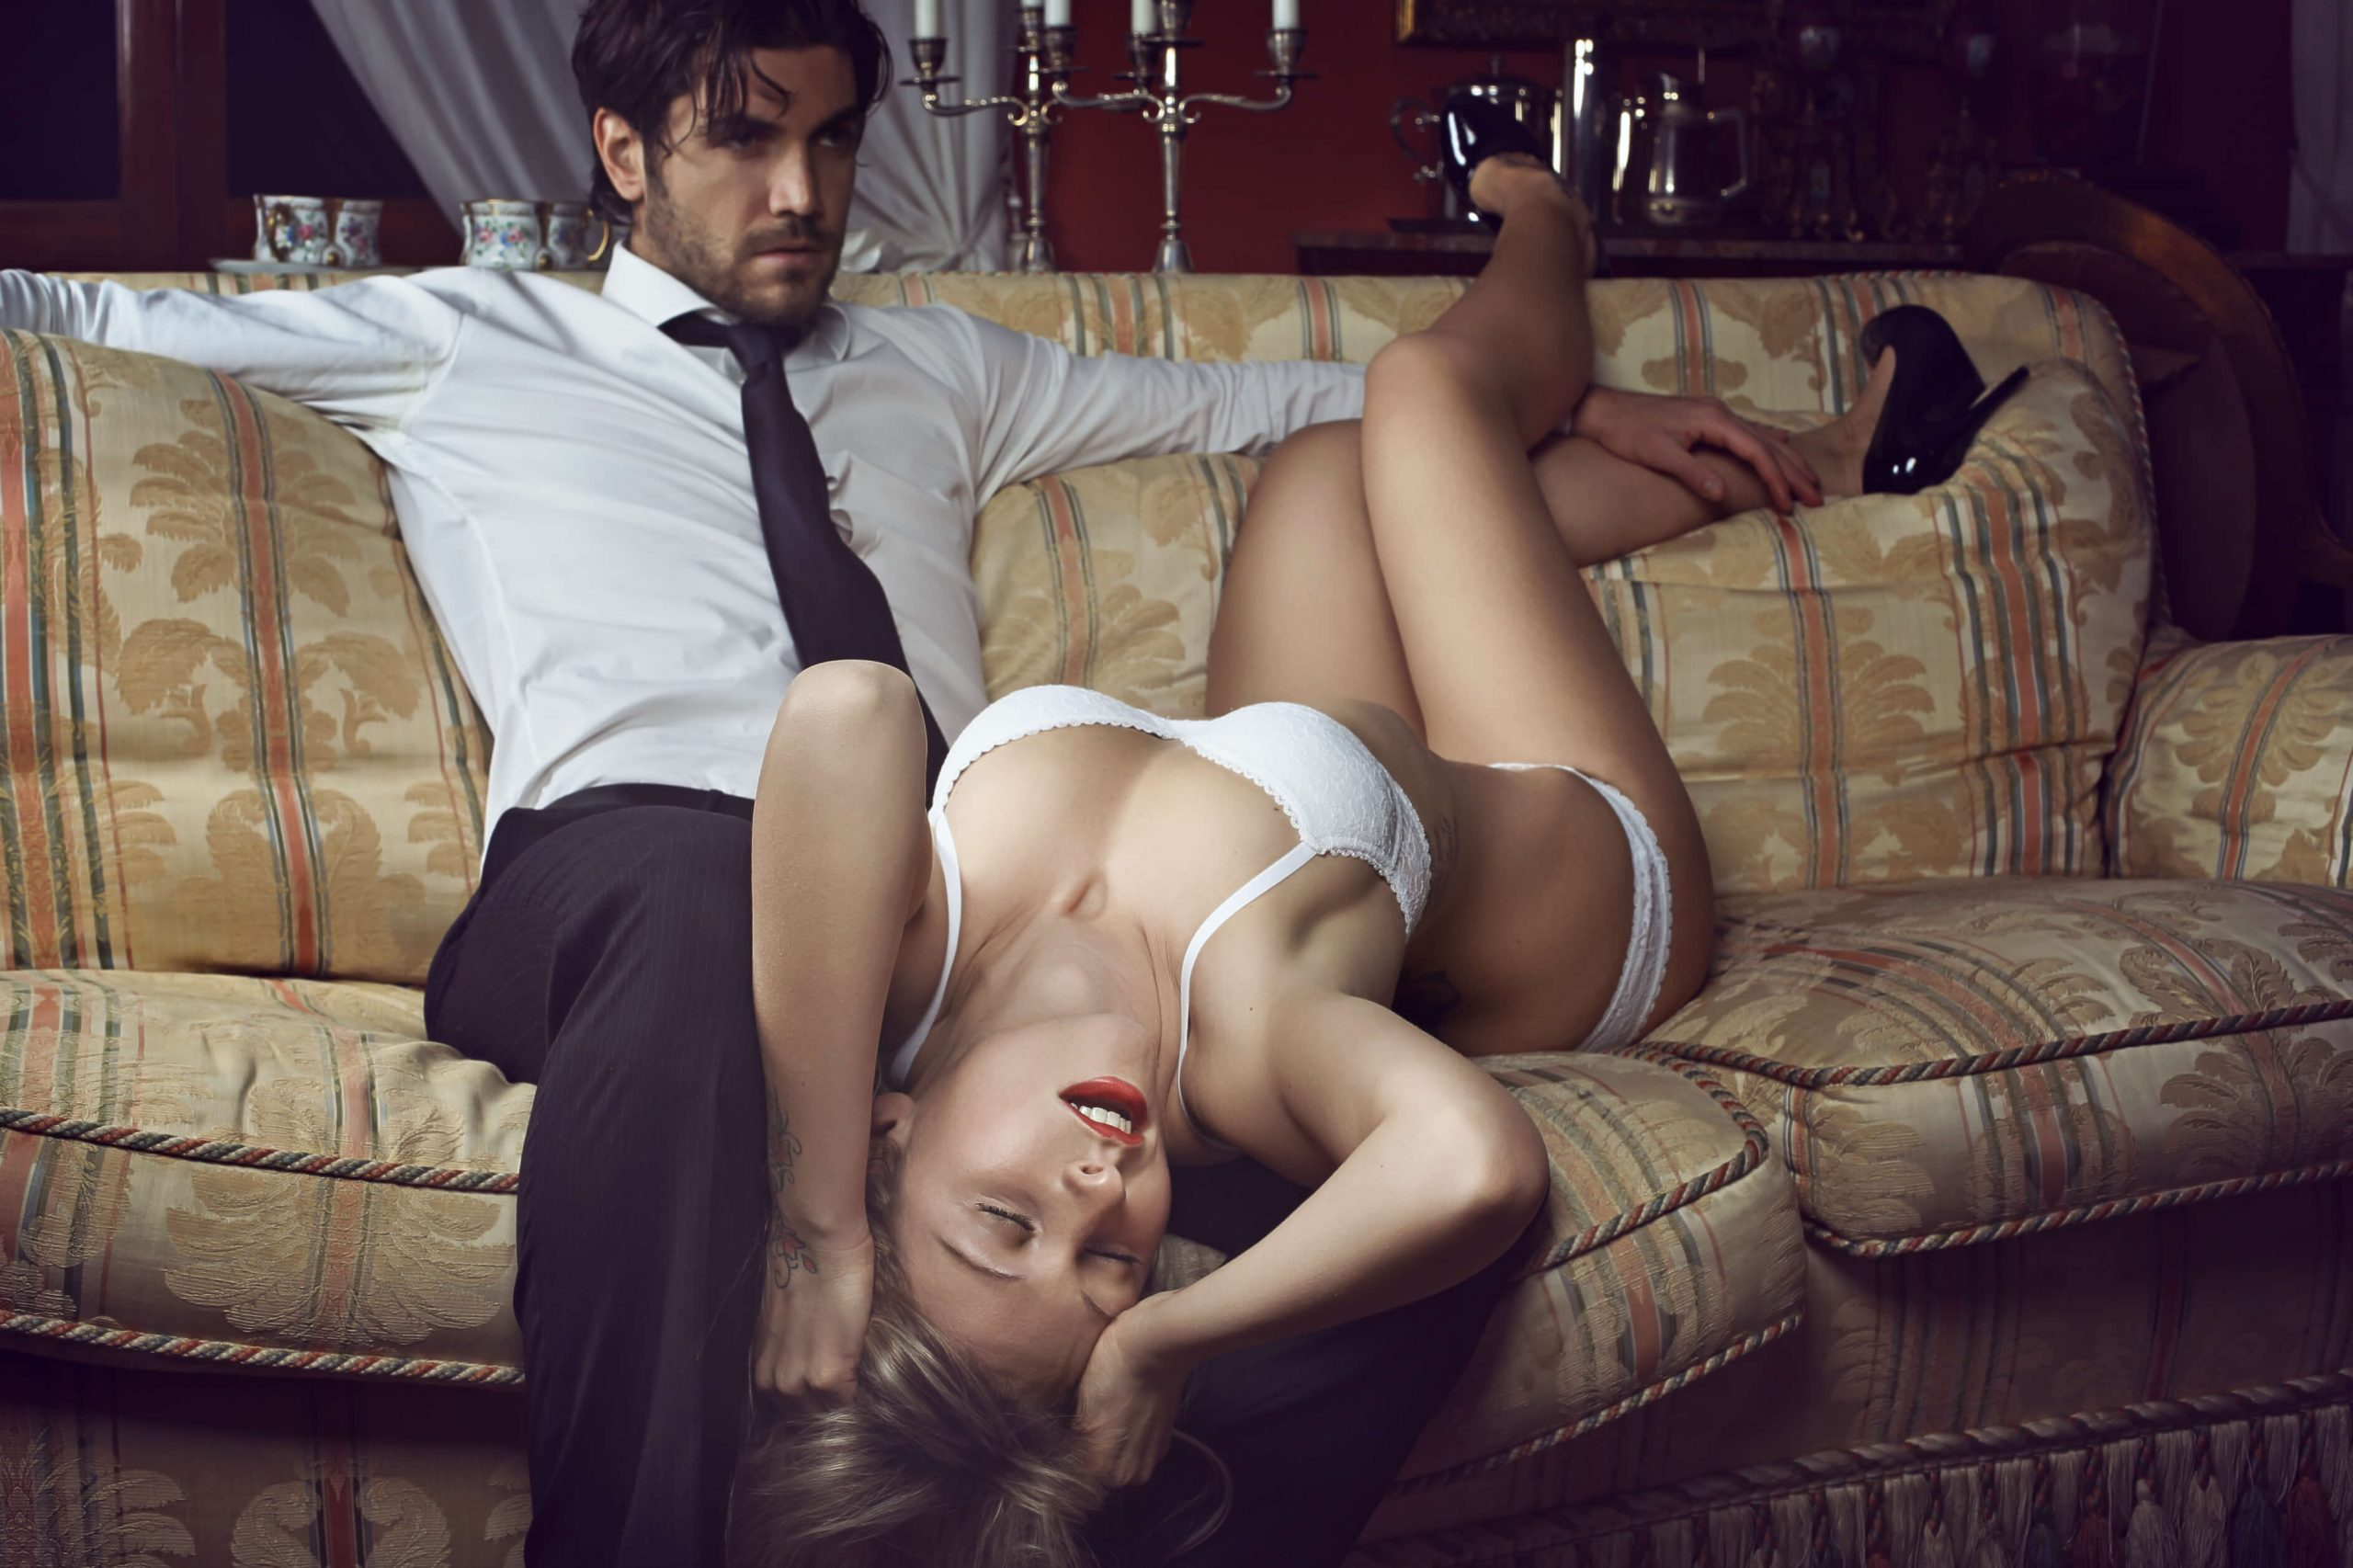 Why The Best Salesmen Get The Hottest Girls